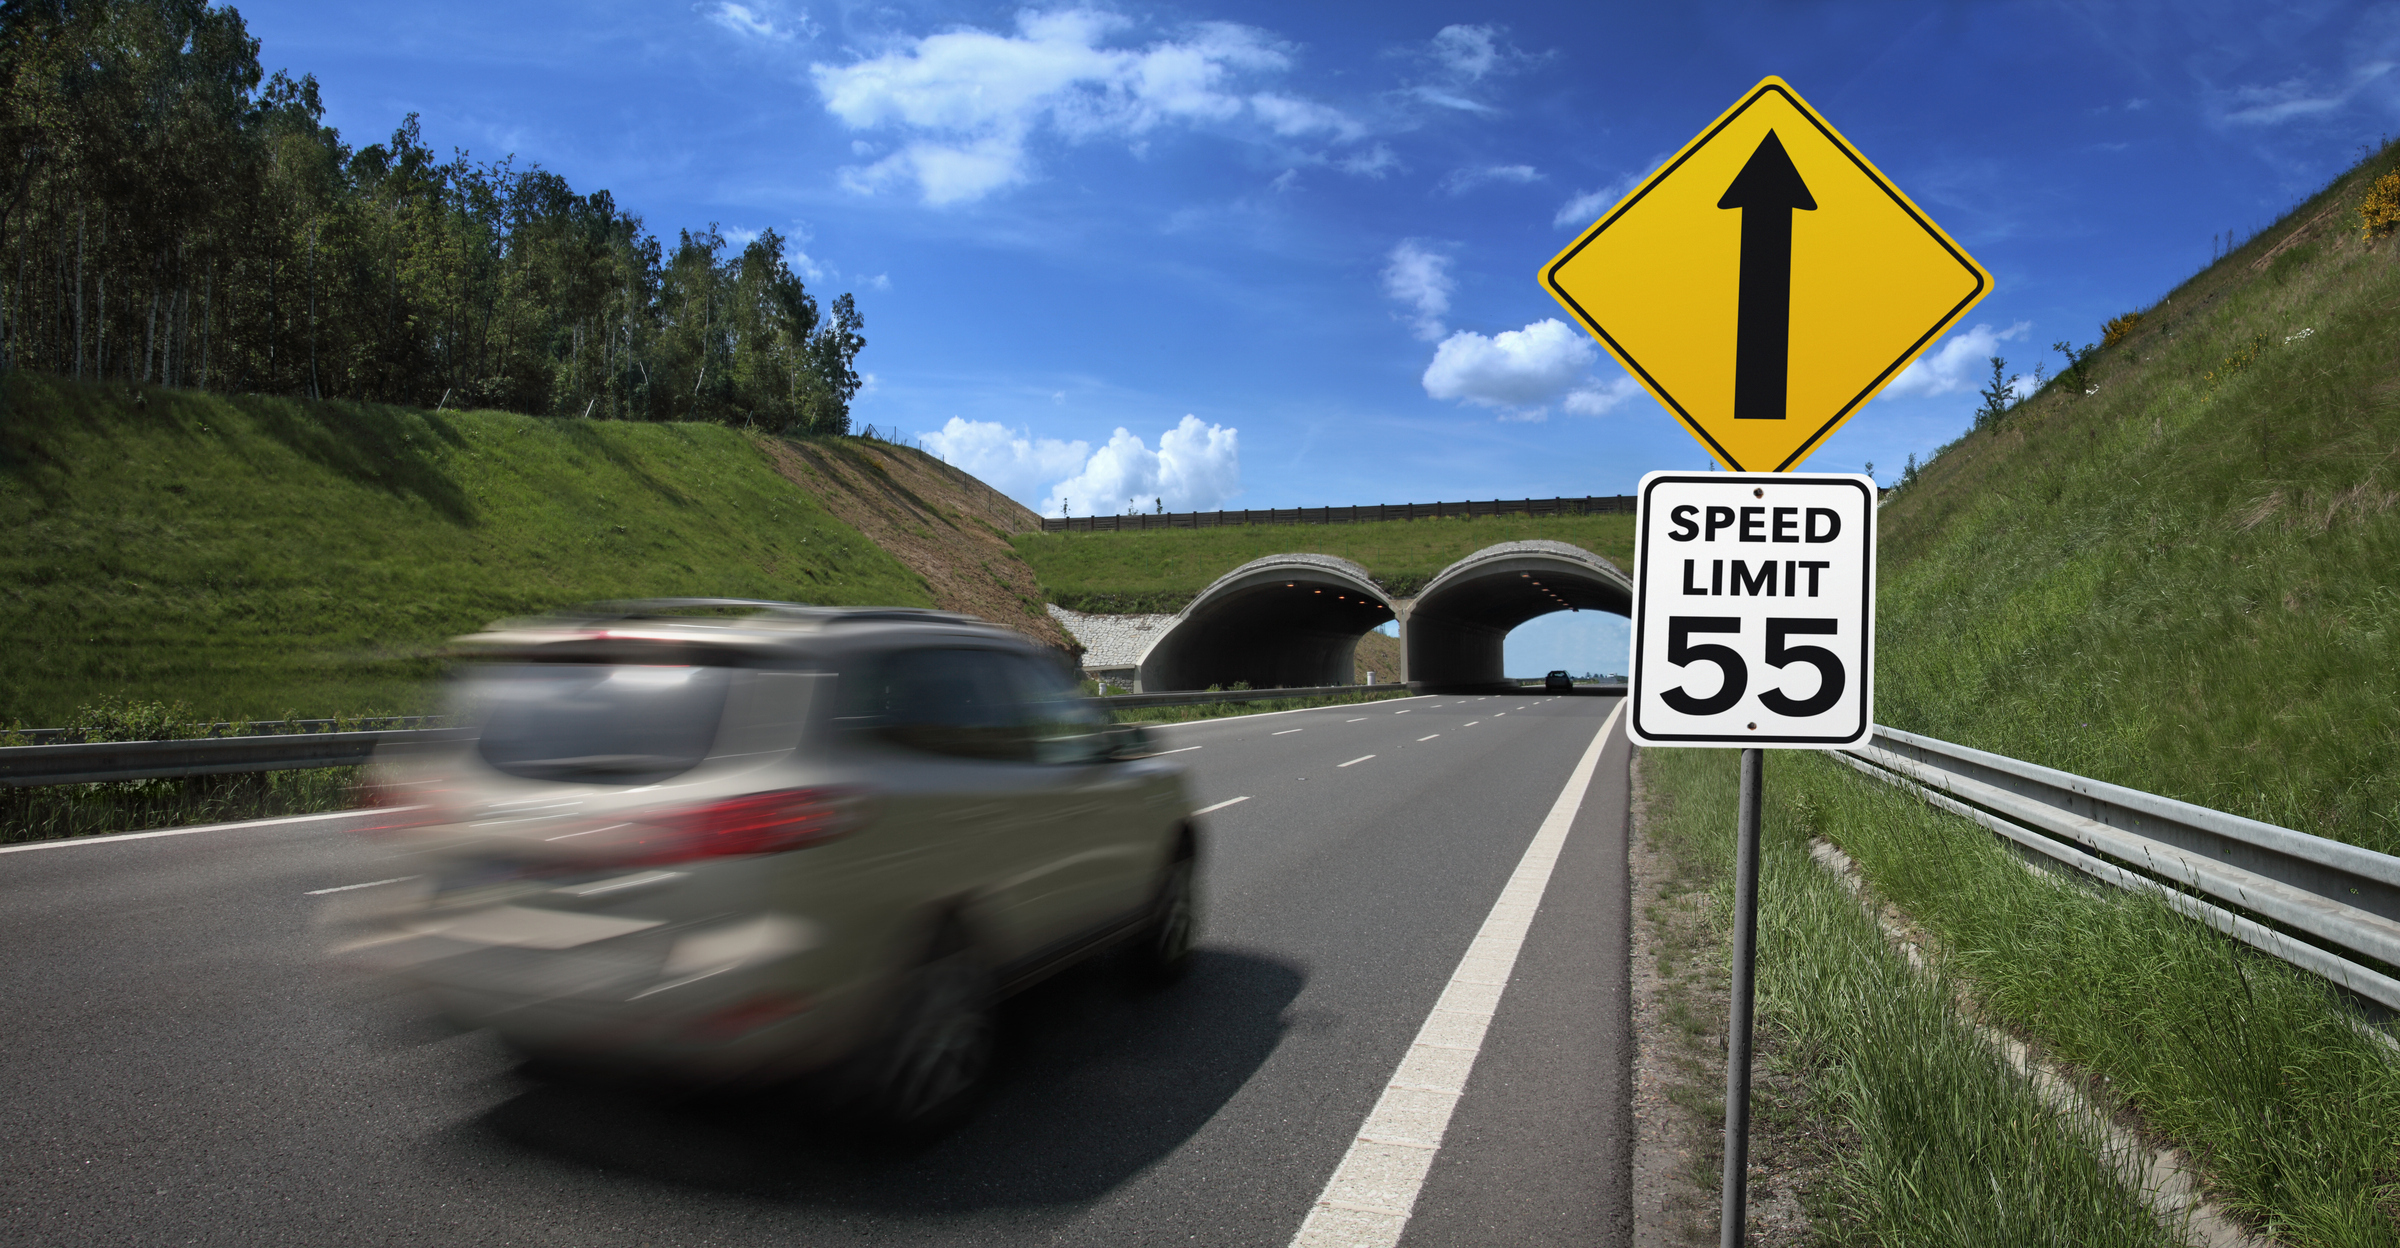 Posted Speed Limit Database Entry